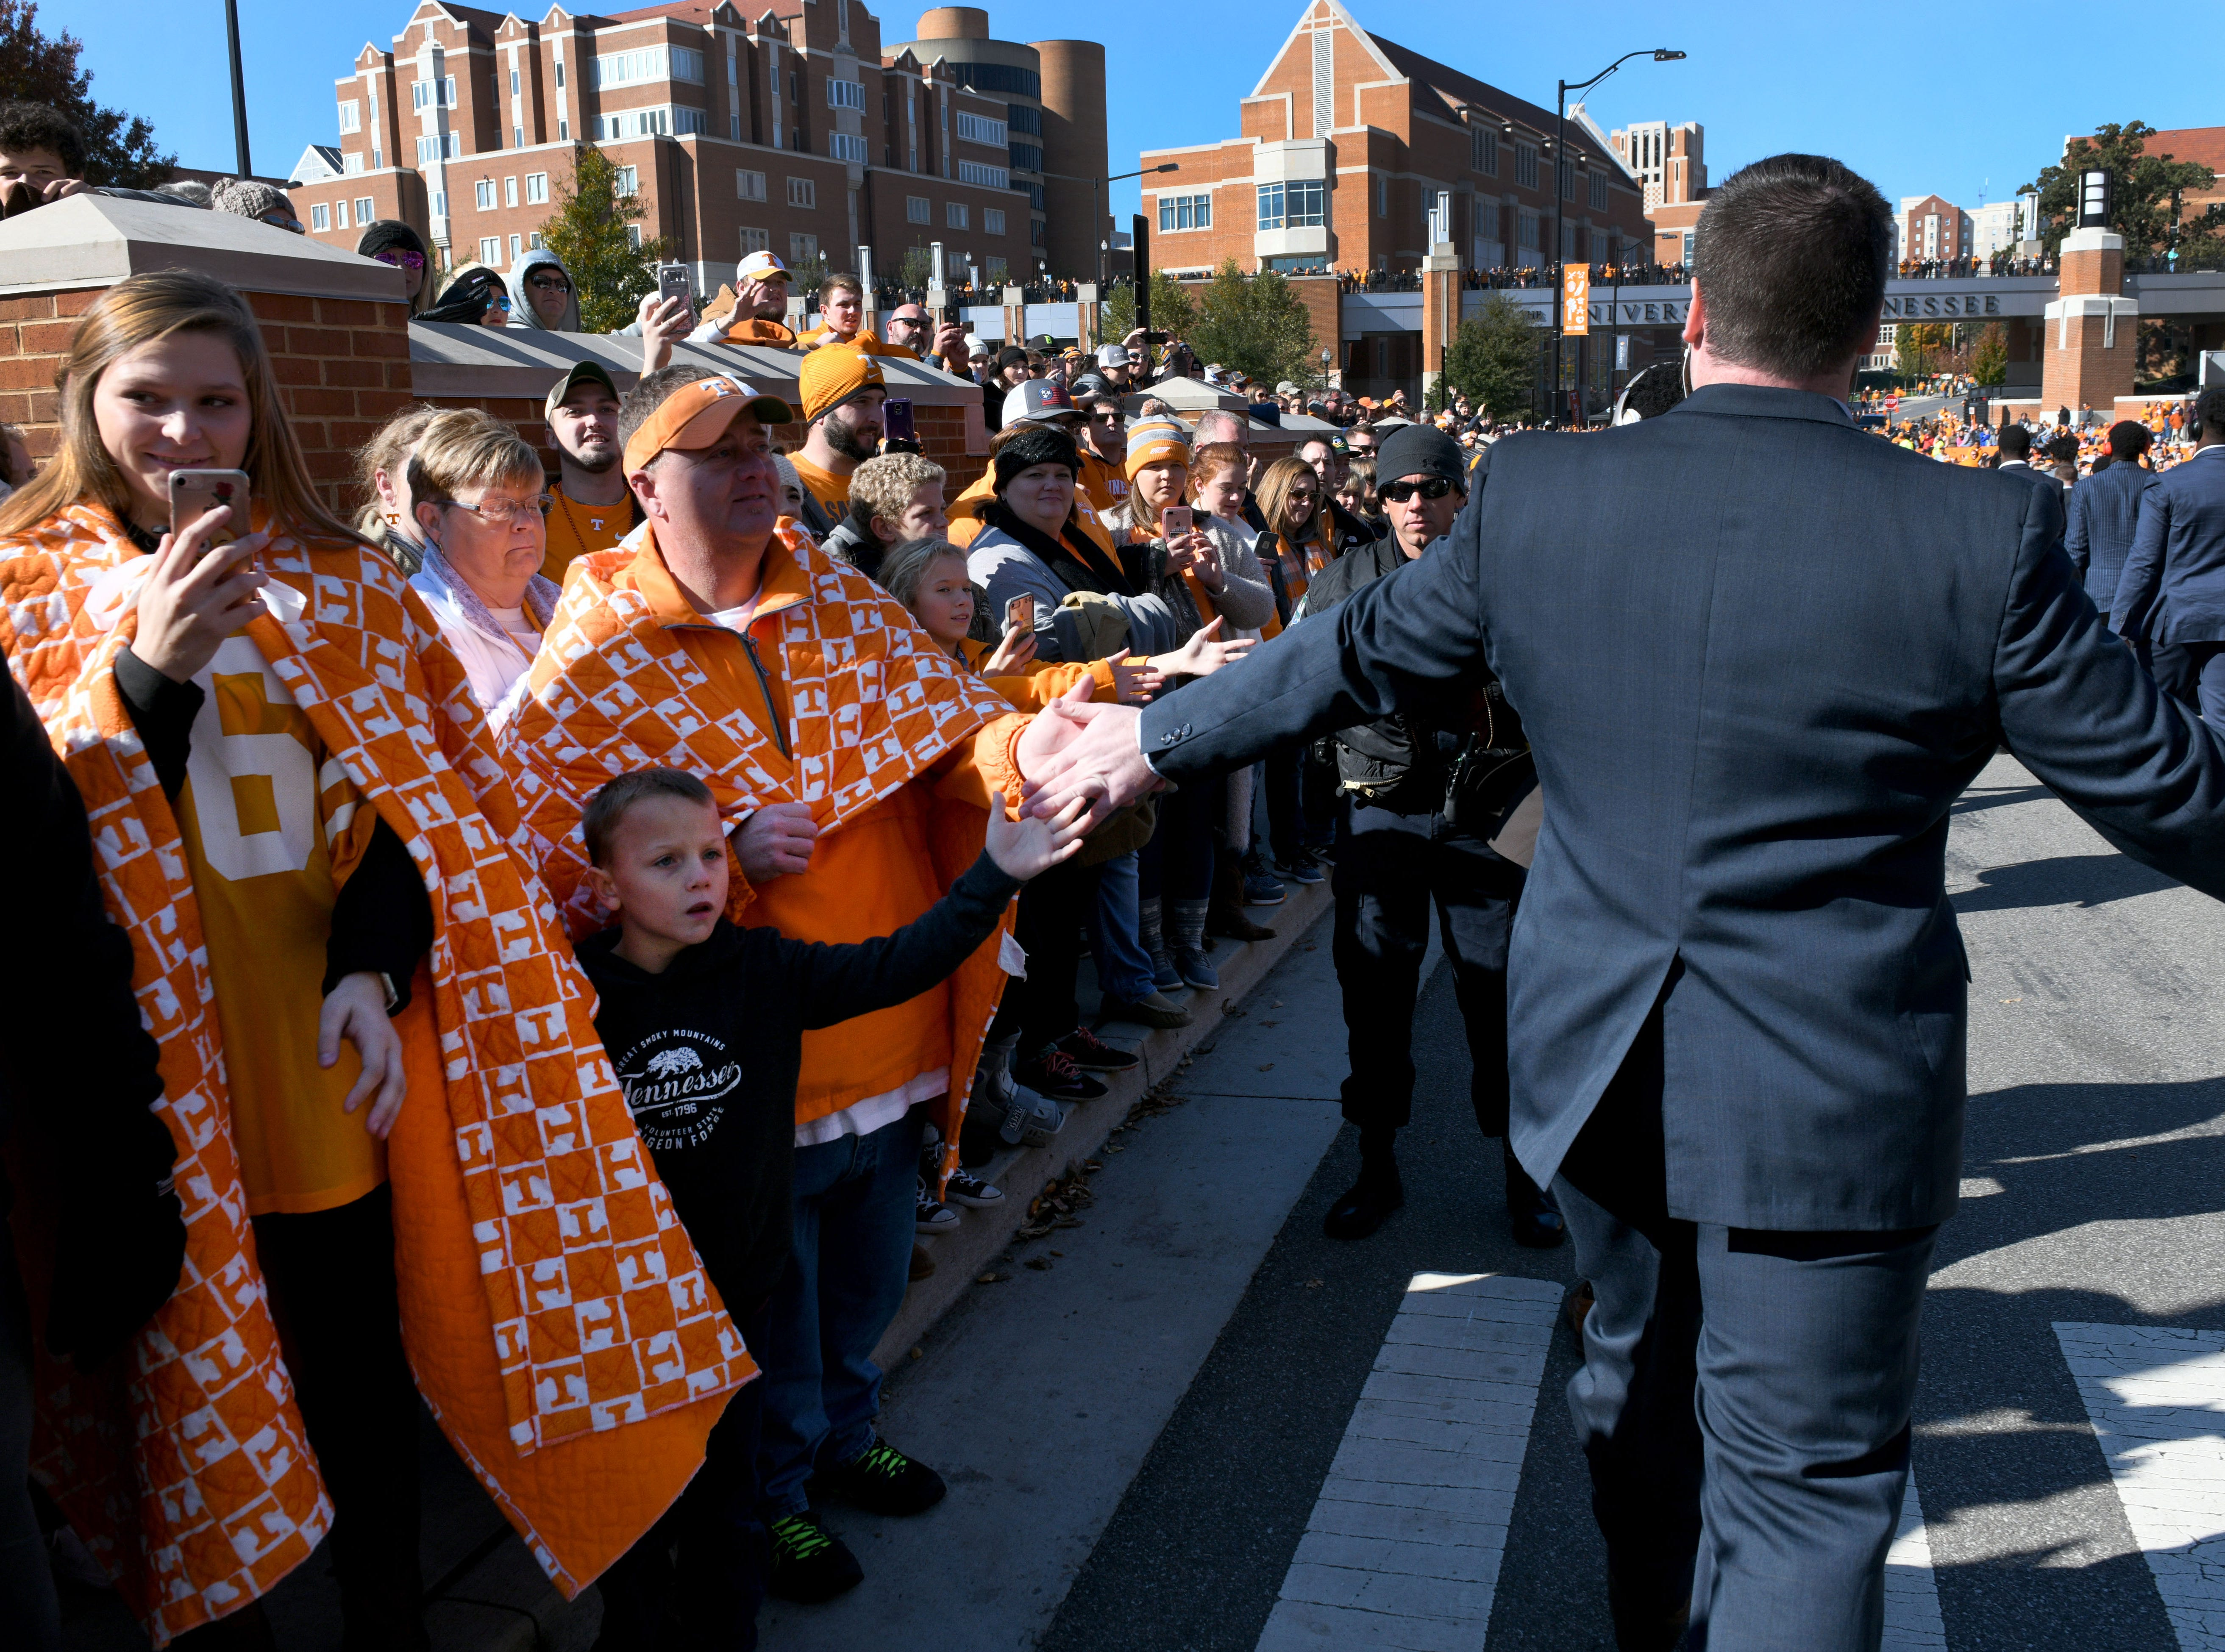 Bundled up Tennessee fans greet players during the Vol Walk before the Kentucky game Saturday, November 10, 2018 at Neyland Stadium in Knoxville, Tenn.